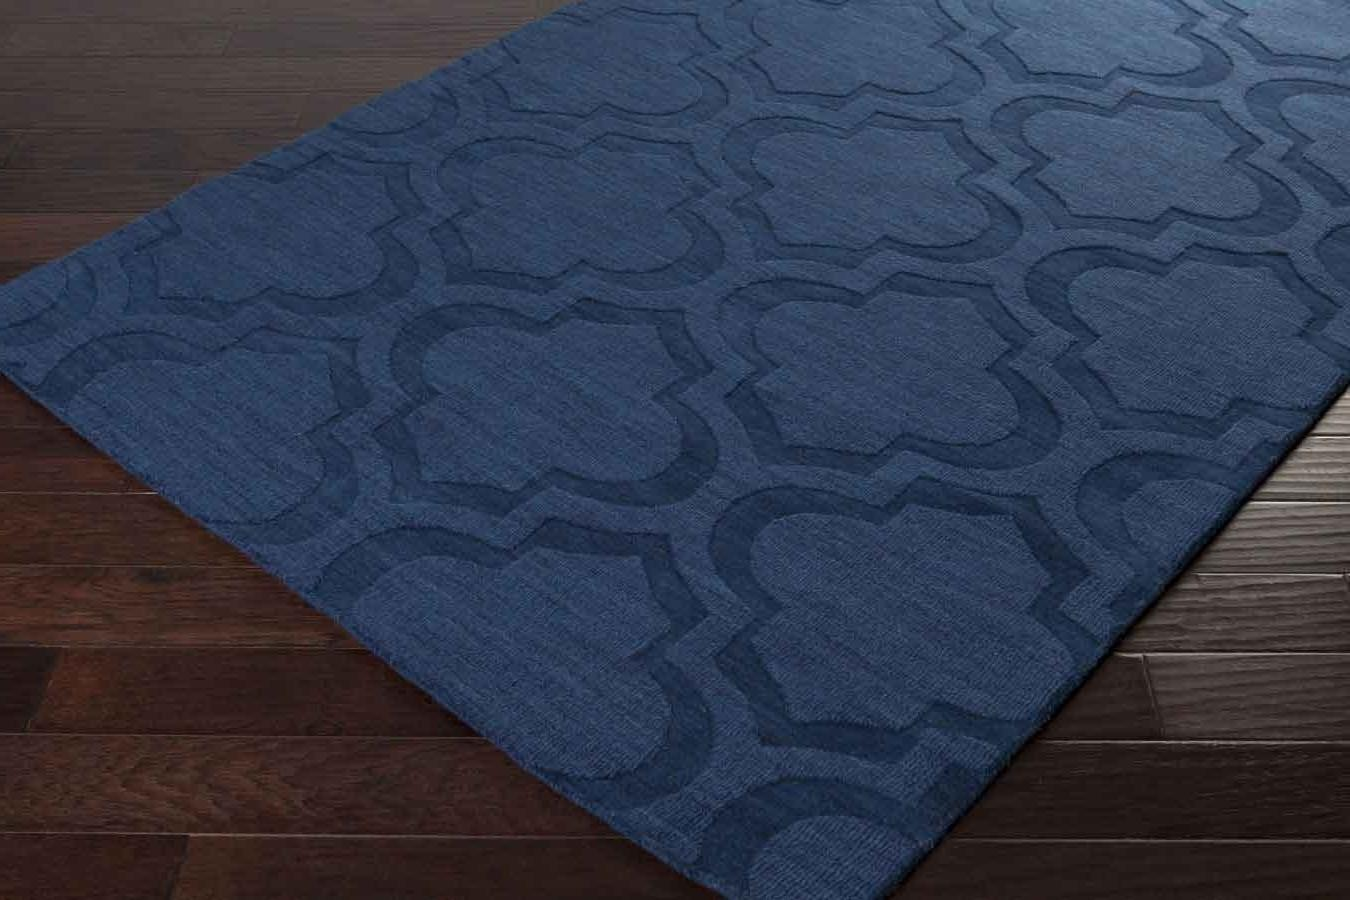 Decor Solid Navy Blue Area Rug Hardwood